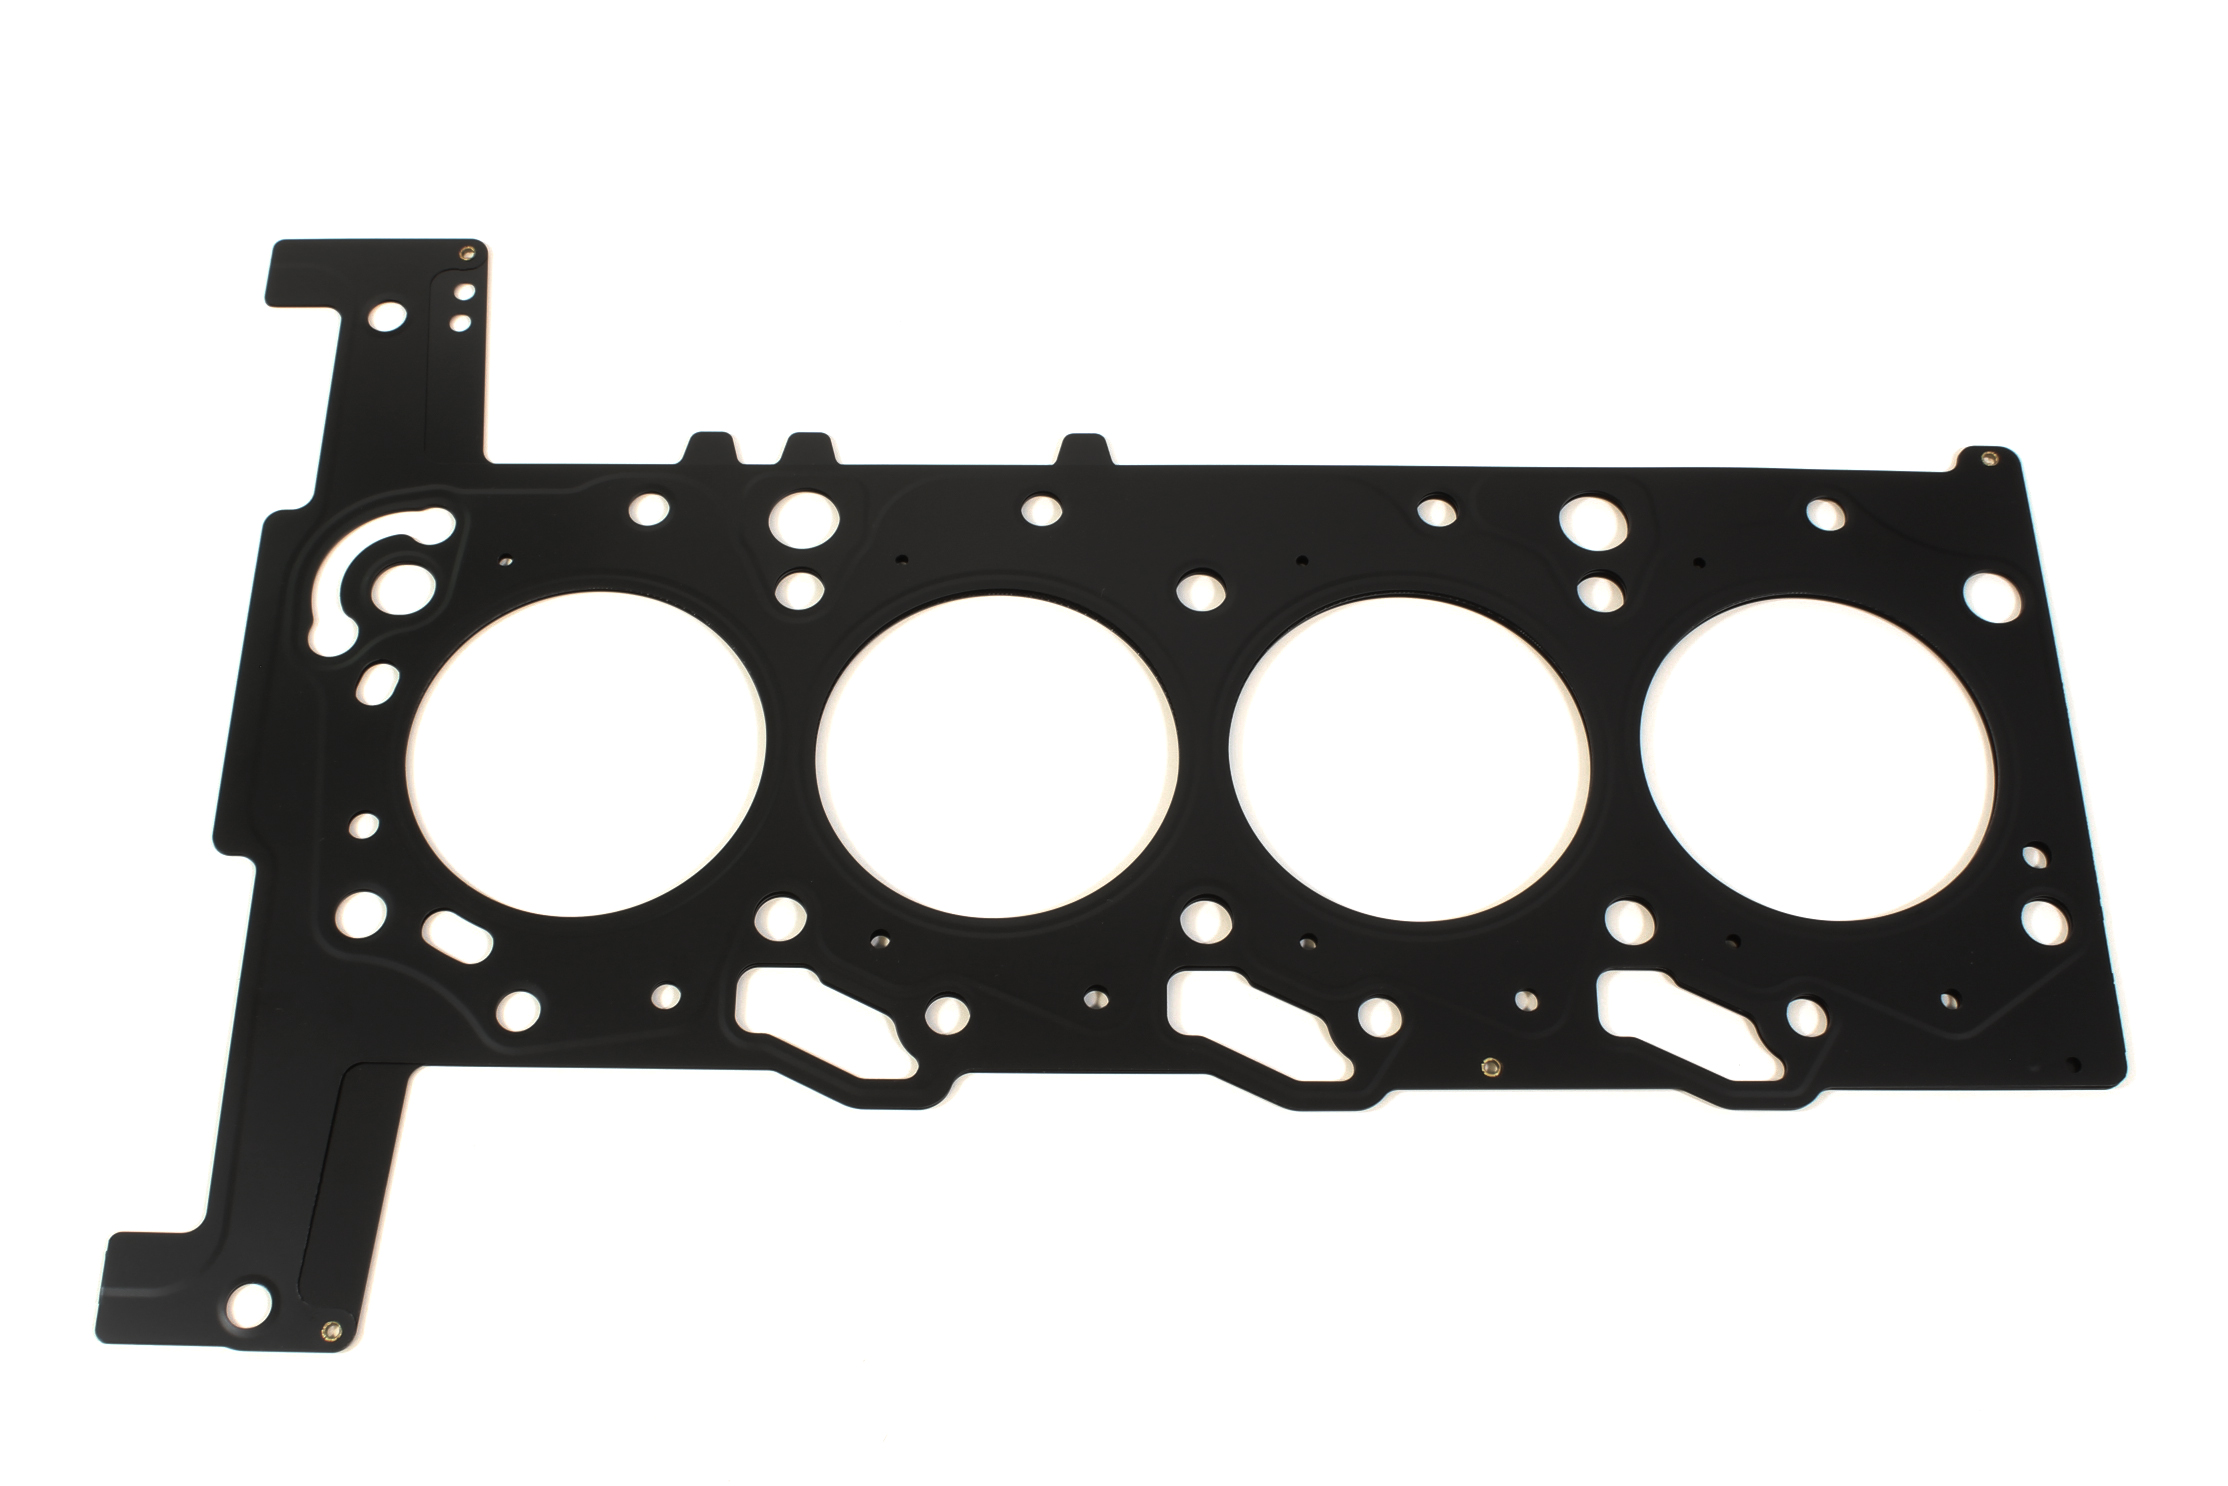 Cylinder head gasket Peugeot Citroen Fiat Ford Boxer 2.2 HDI 4HG 4HH 4HJ NEW